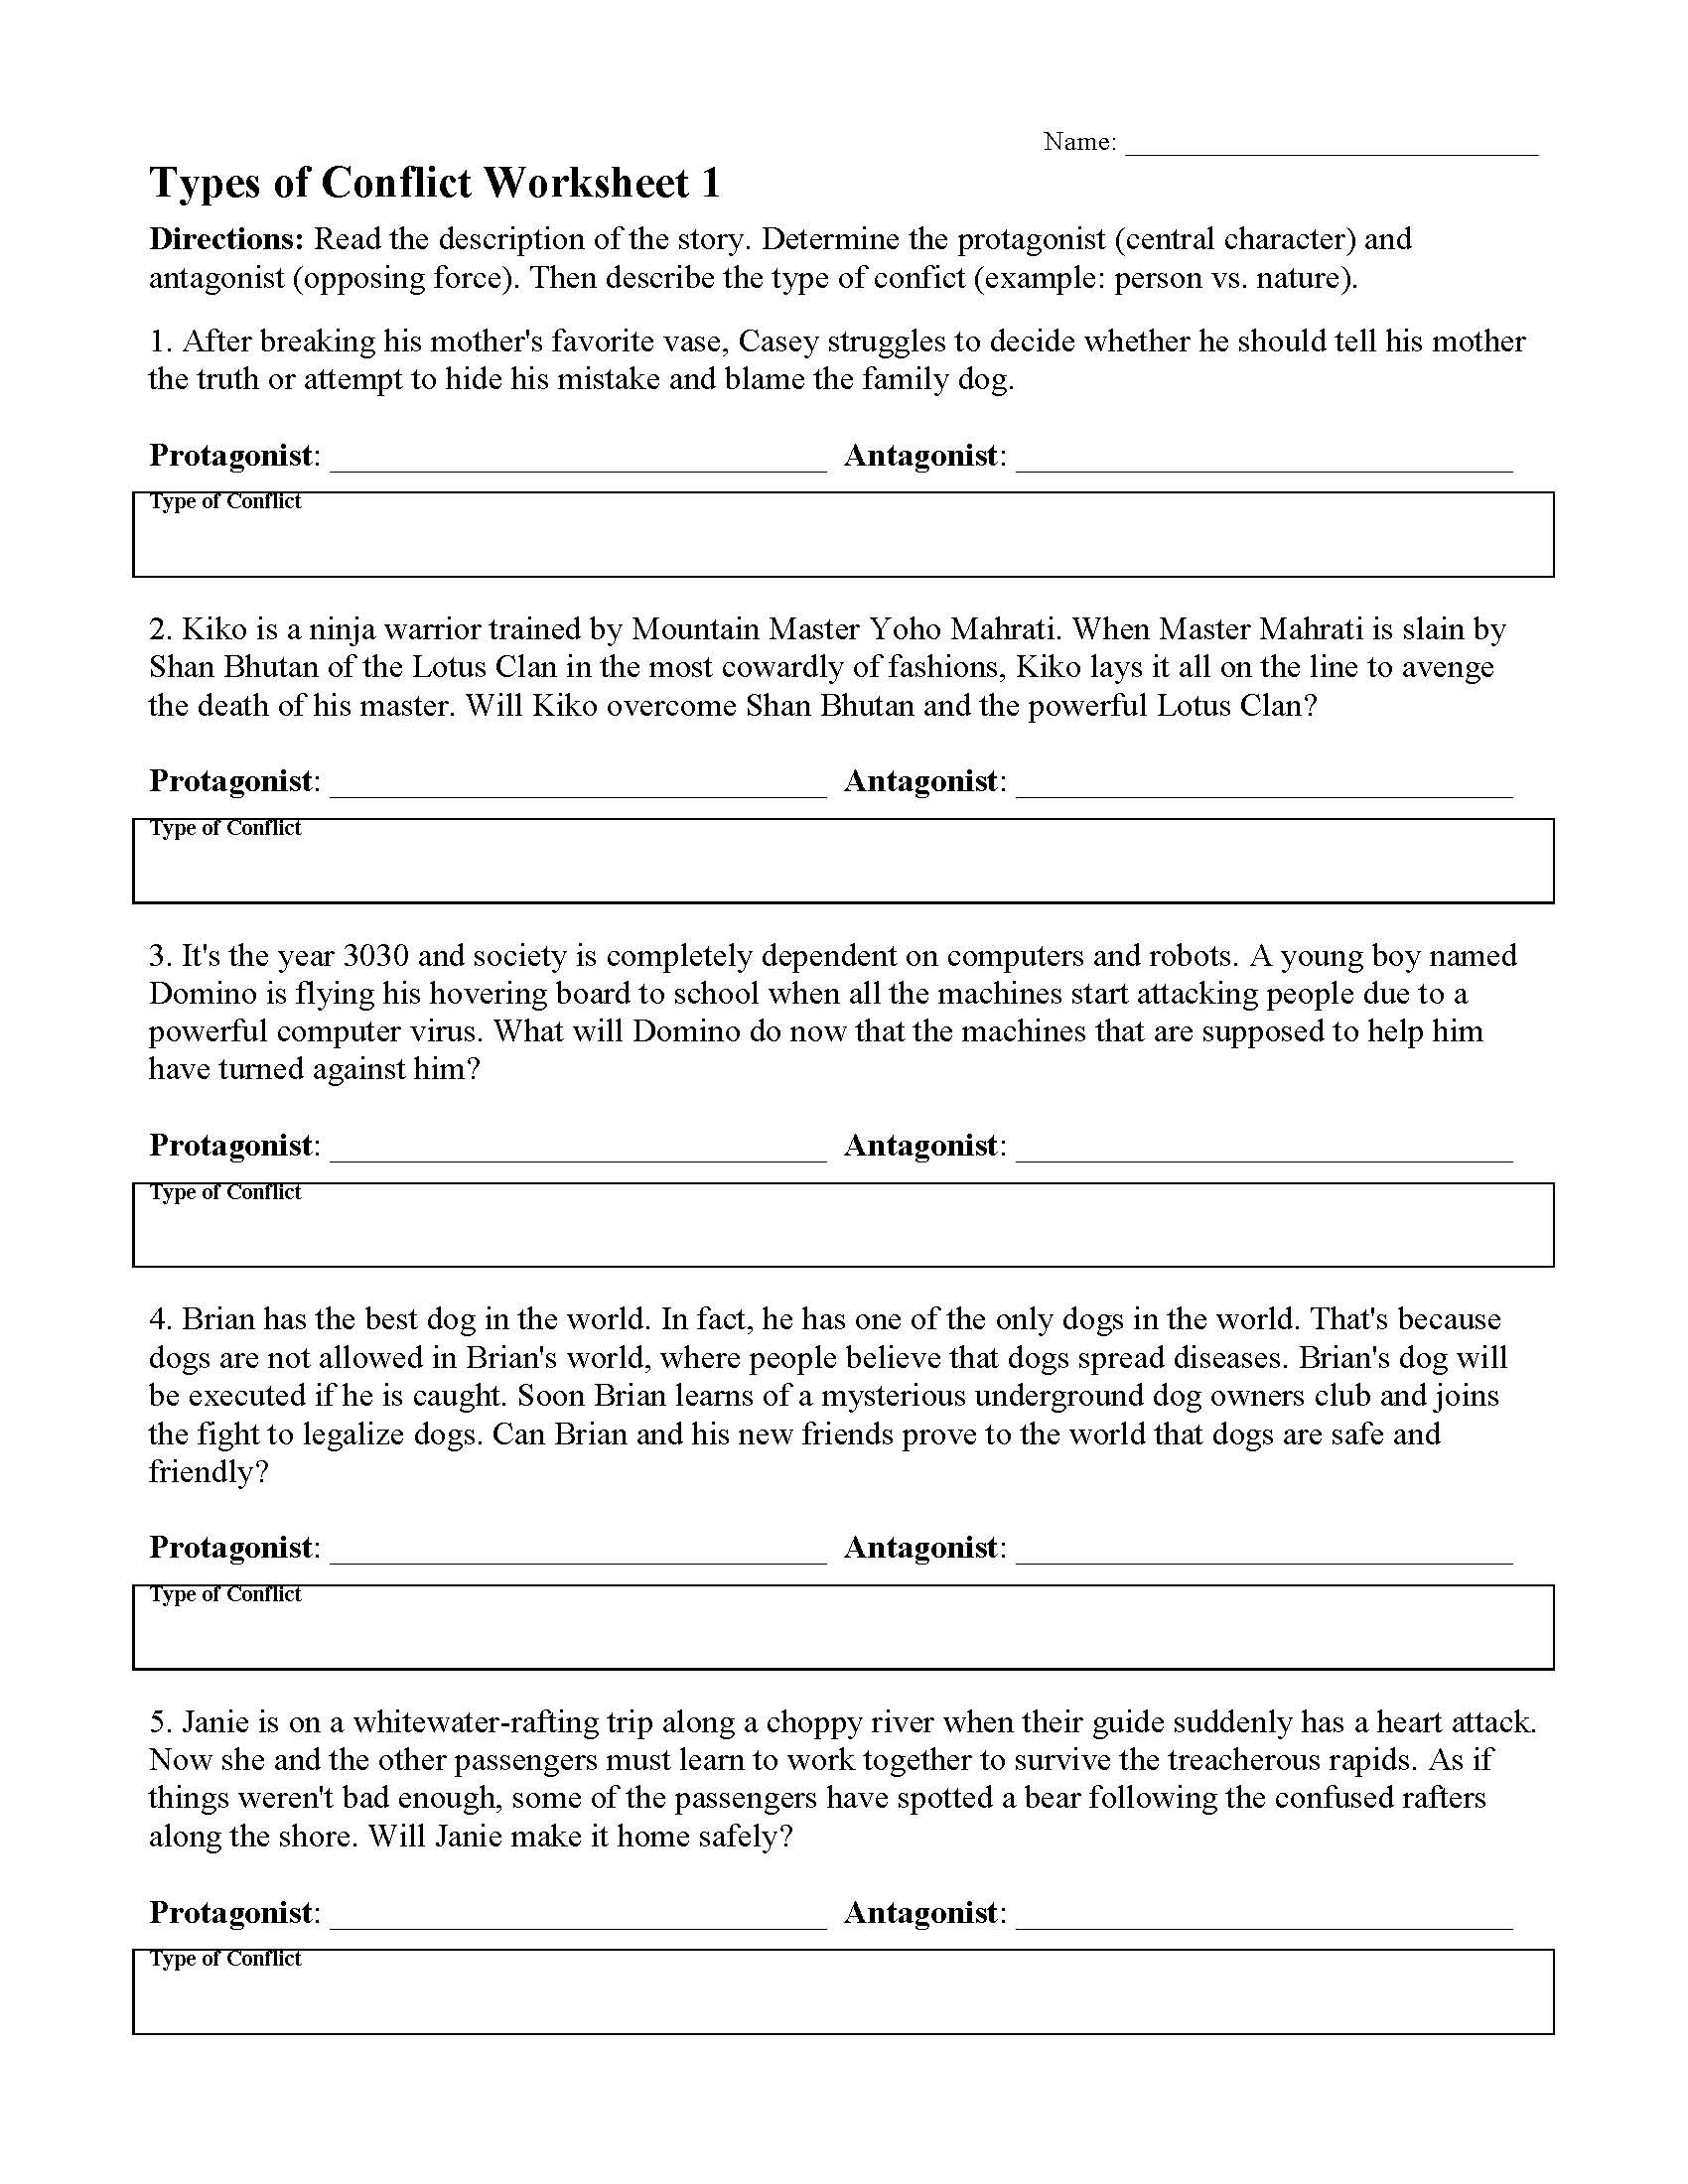 Conflict Worksheets for Middle School Types Of Conflicts In Stories Worksheets & Lessons